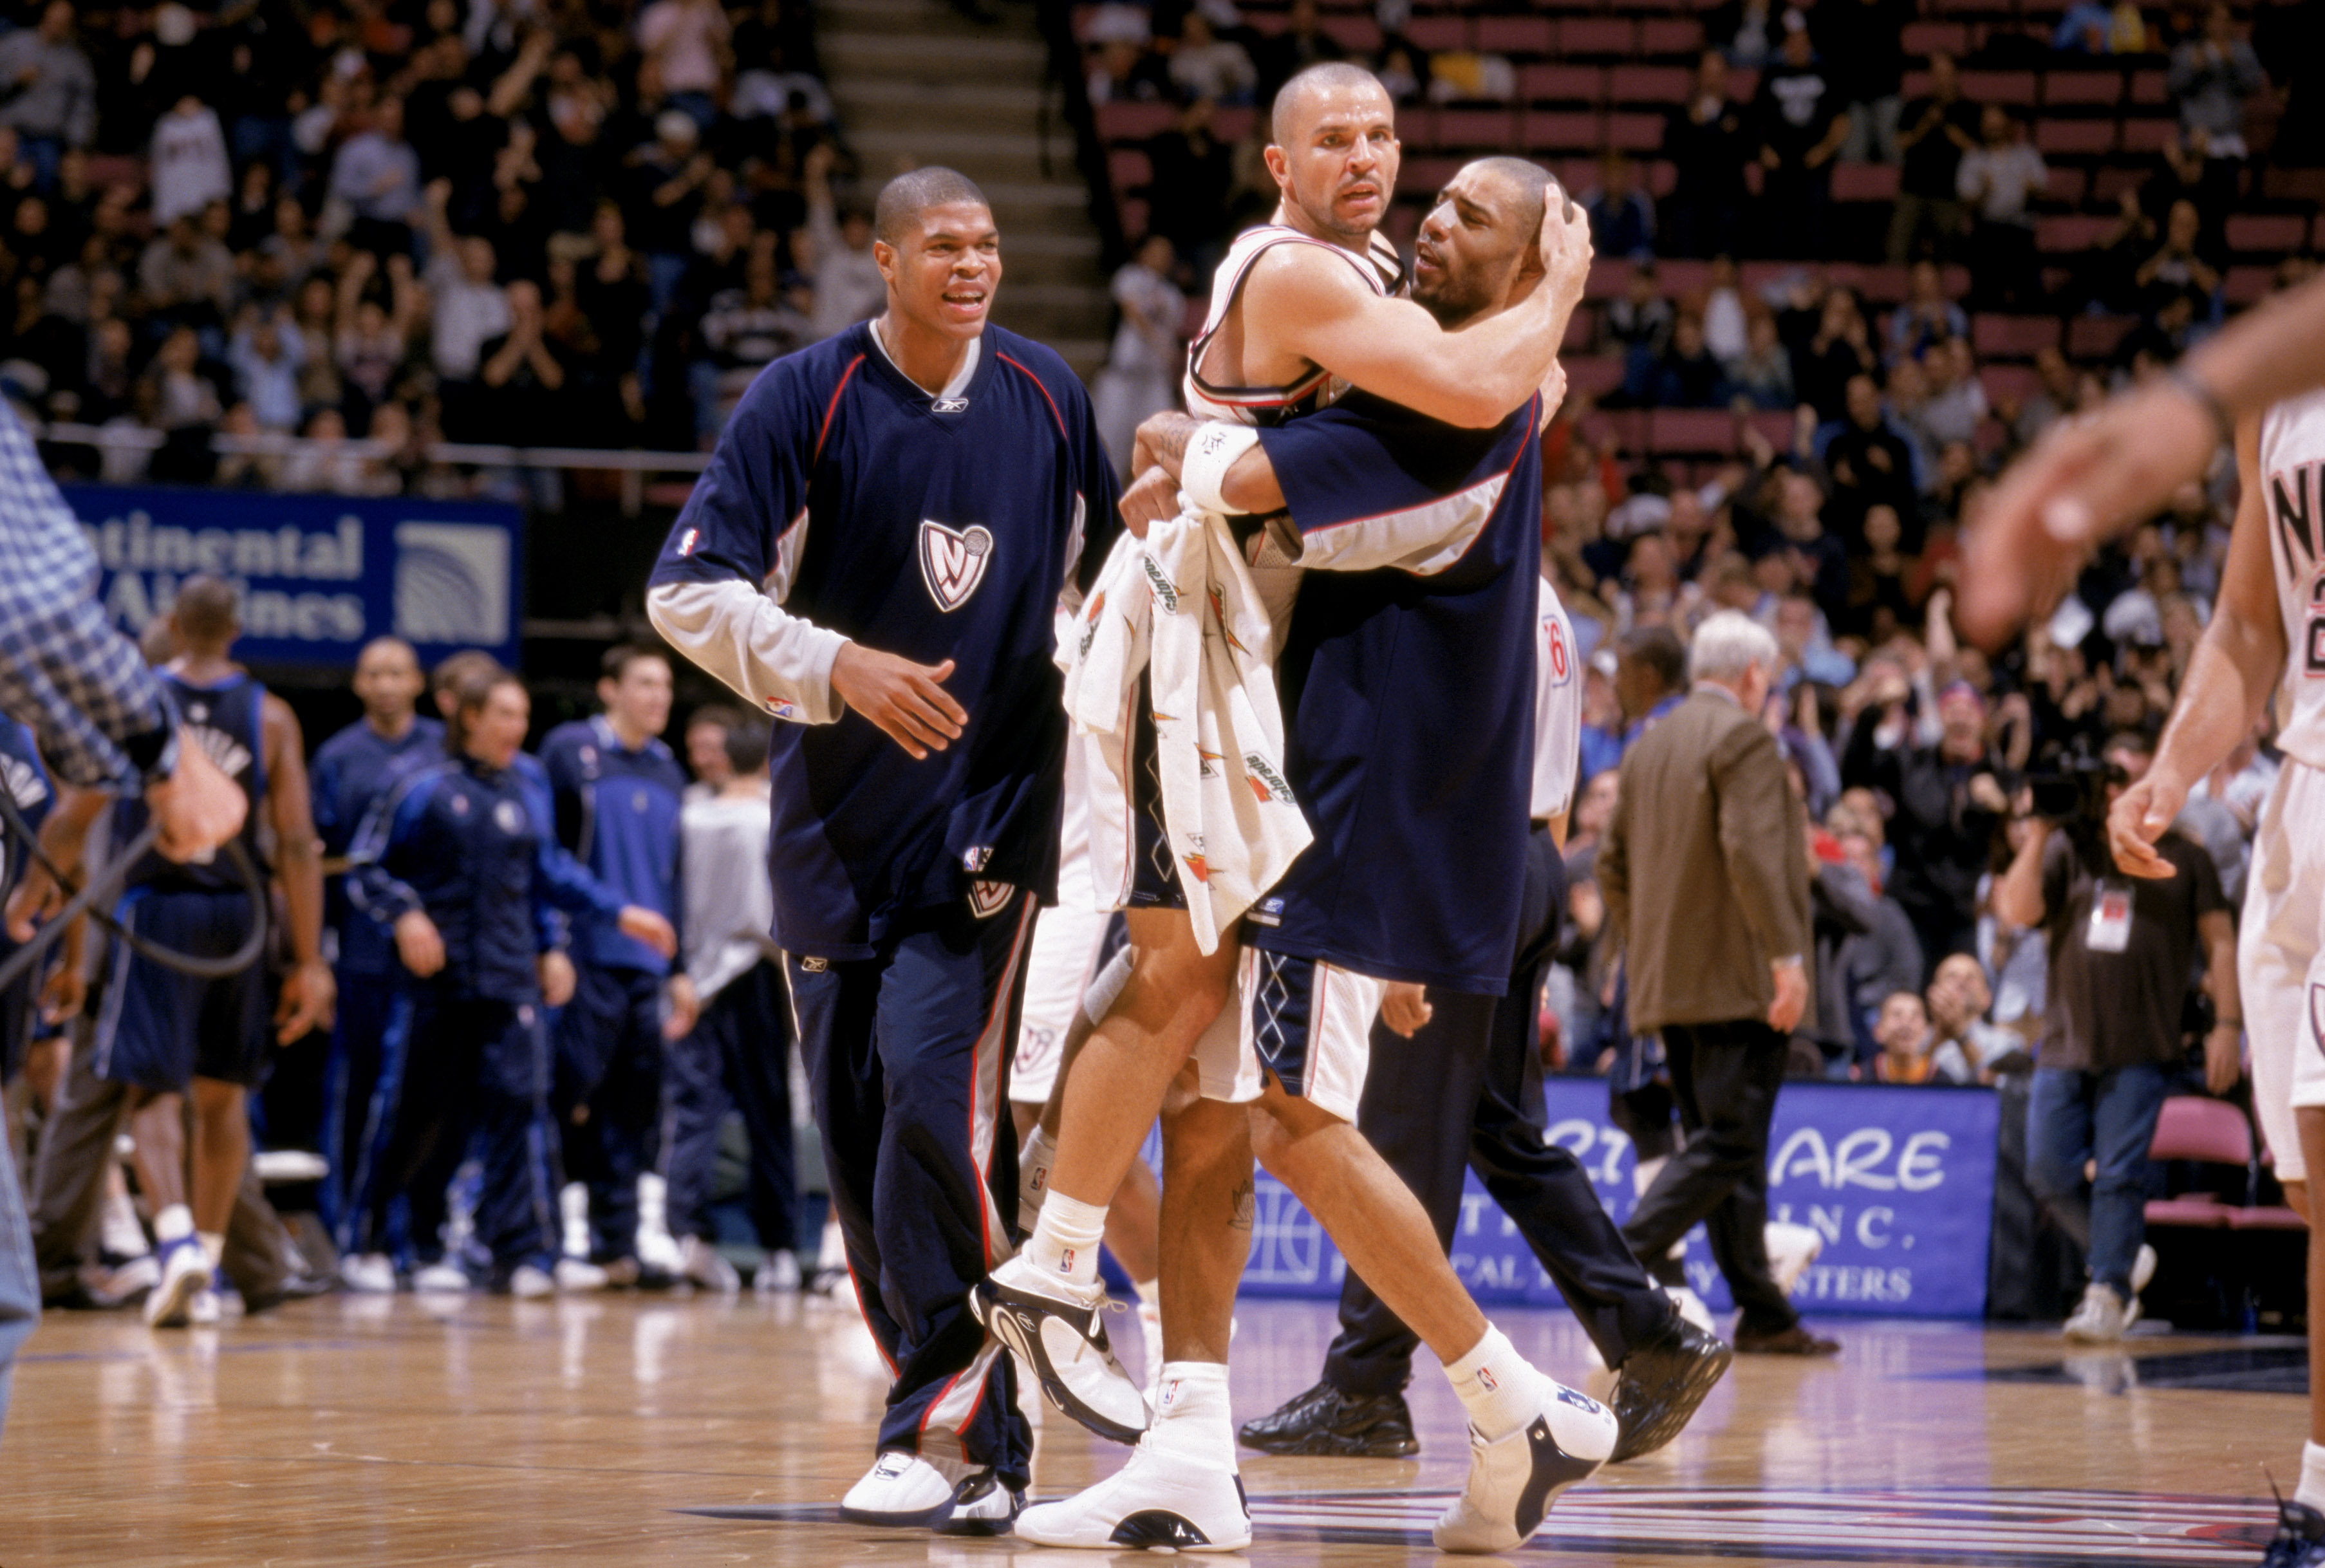 98578299d0d5 Jason Kidd  5 of the New Jersey Nets leaps into the arms of Kenyon Martin